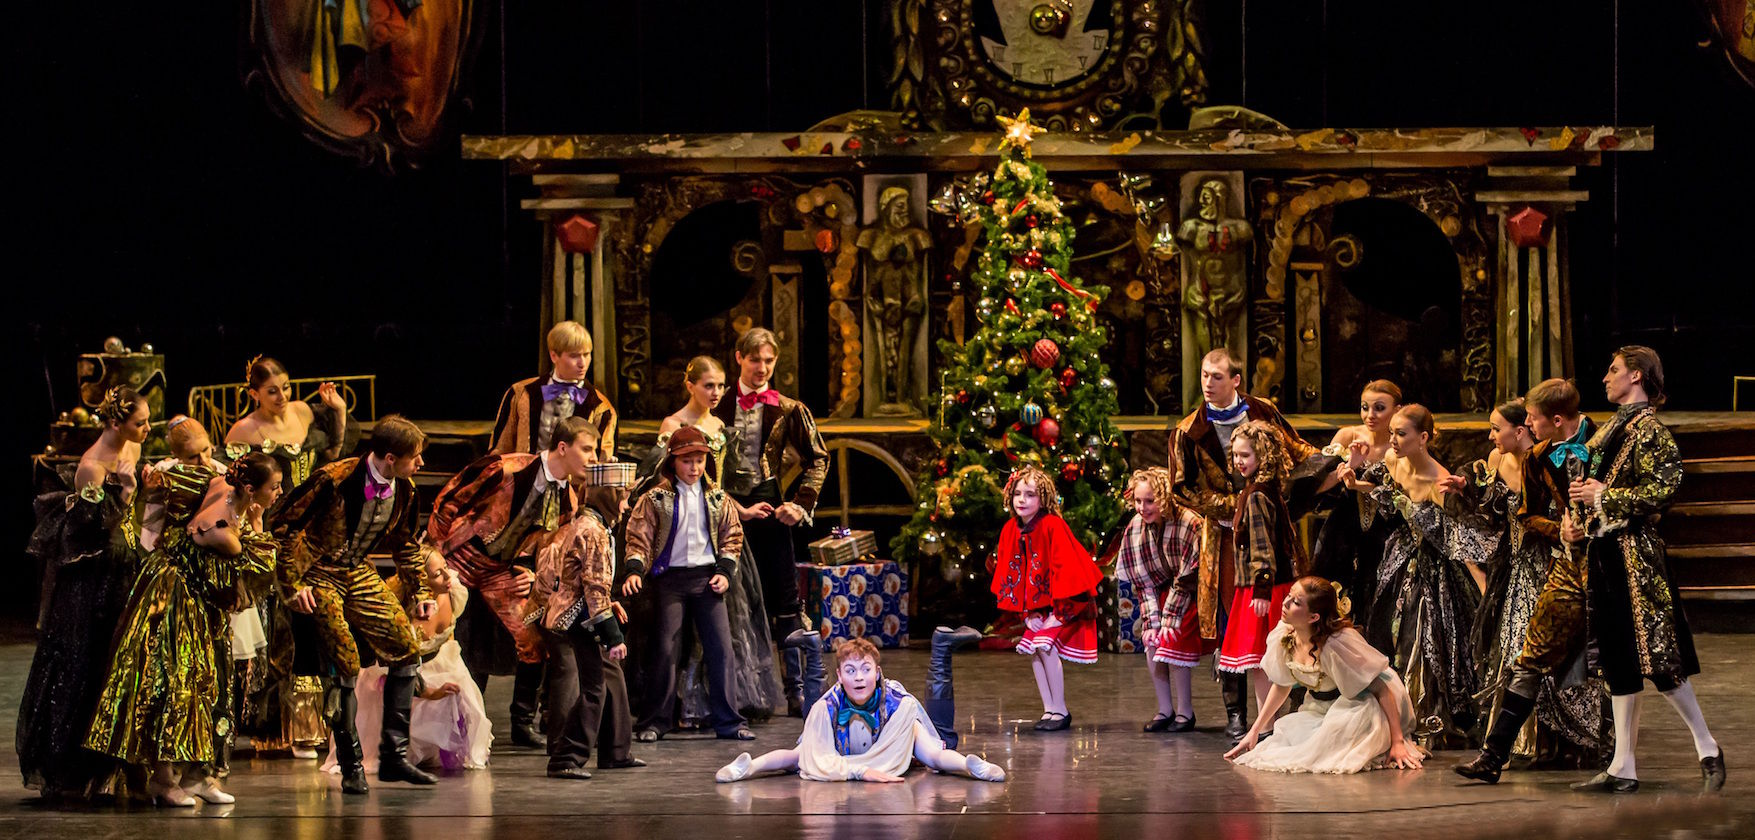 Nutcracker by Ukrainian Shumka Dancers. Photo: Gregg Ingram